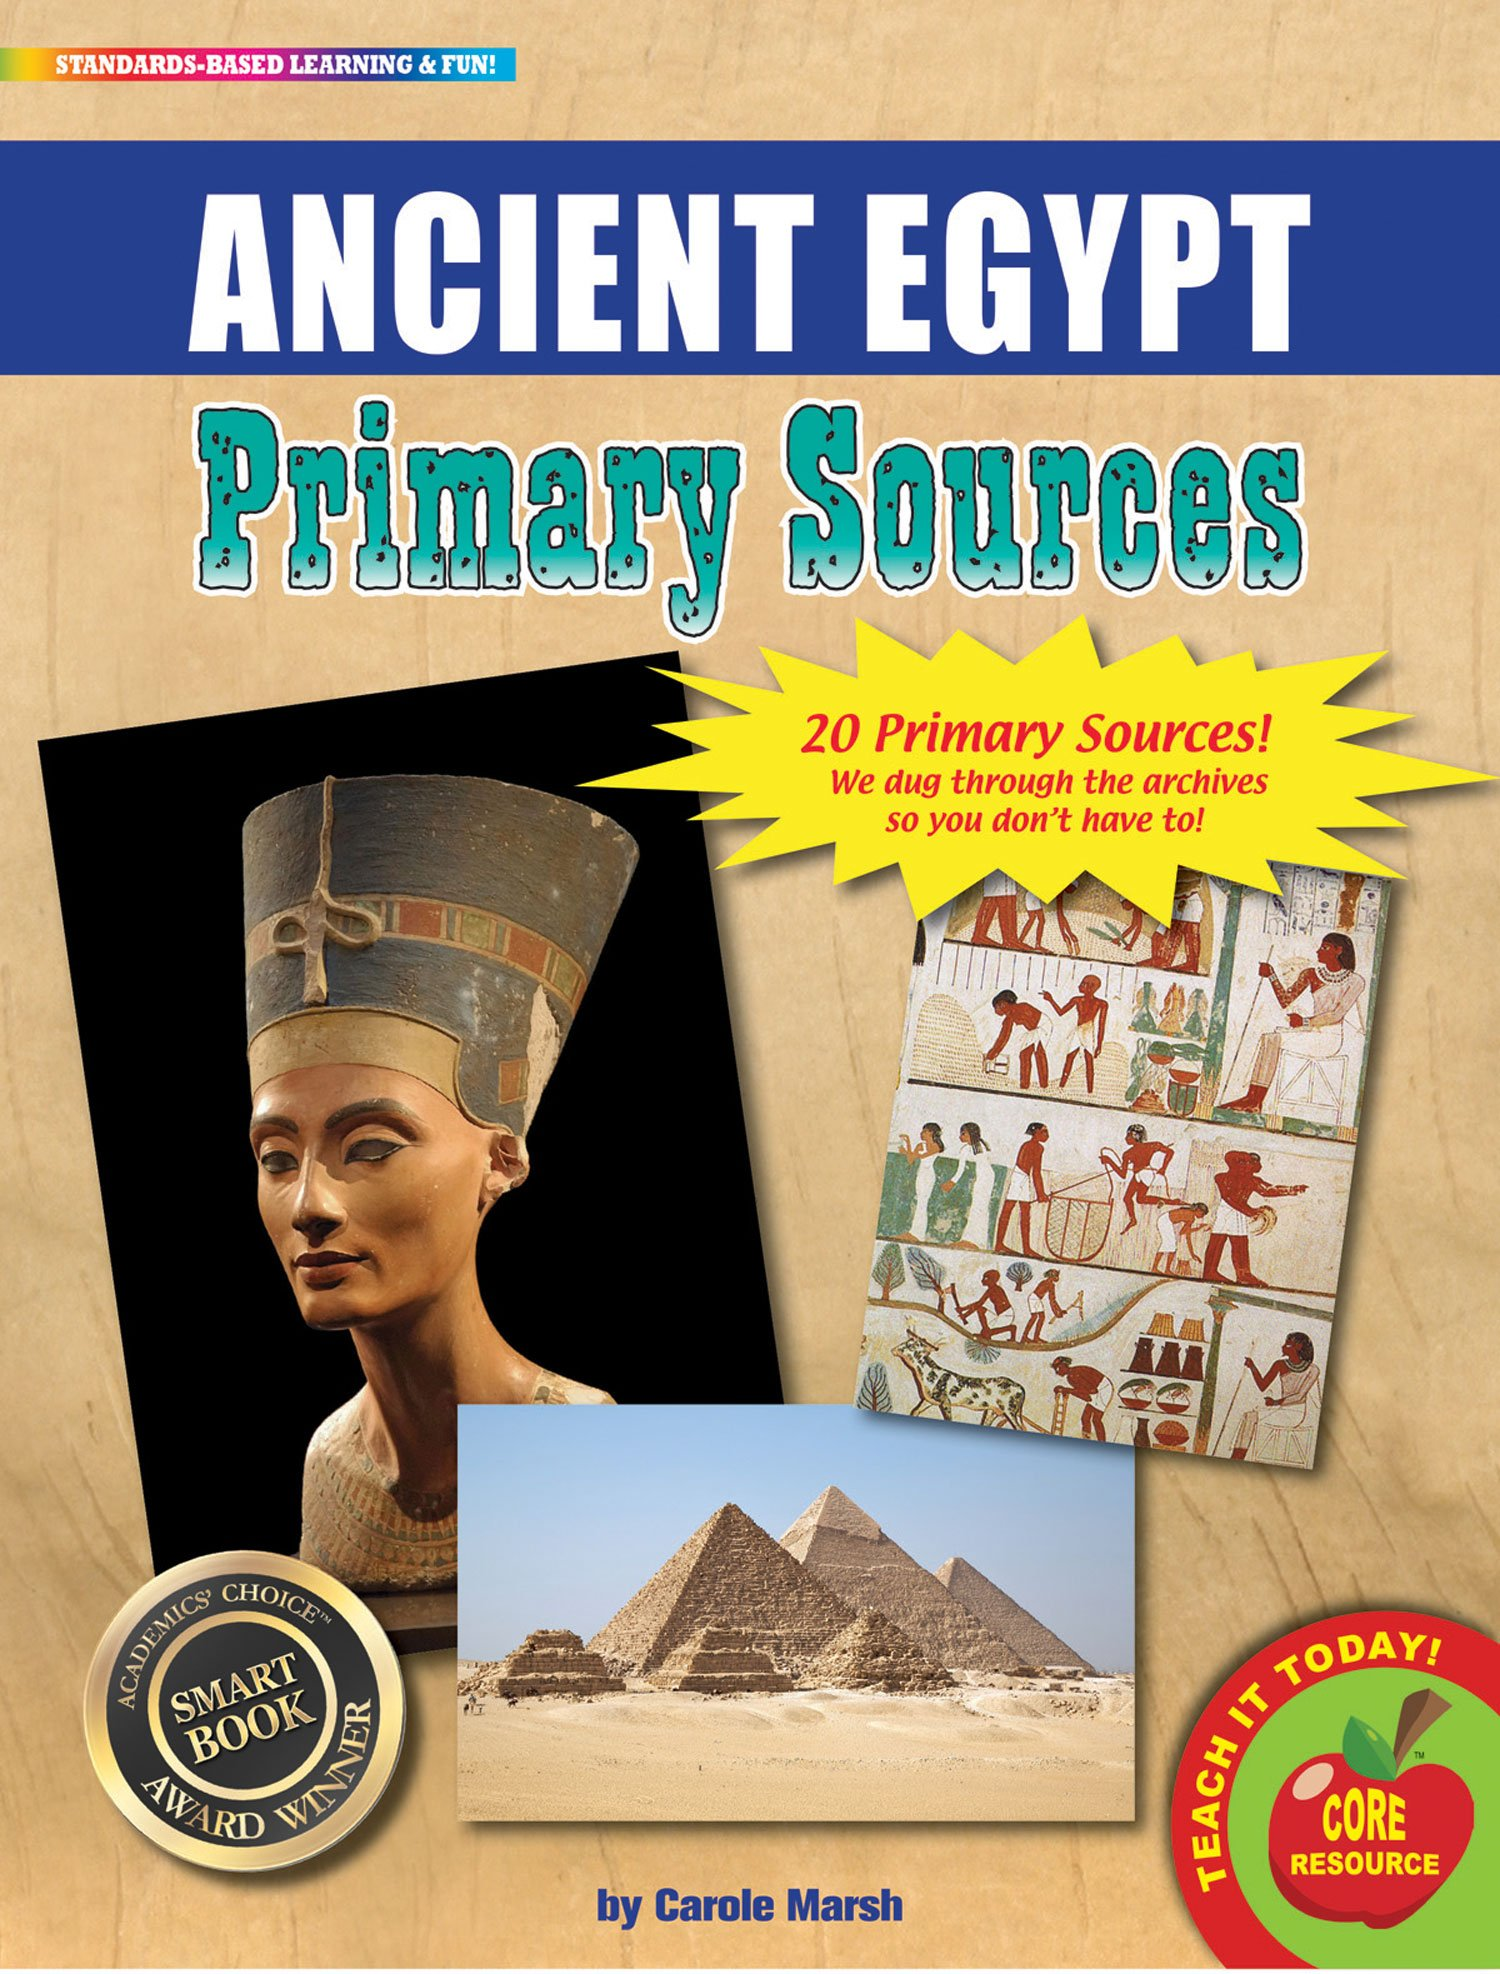 Ancient Egypt Primary Sources